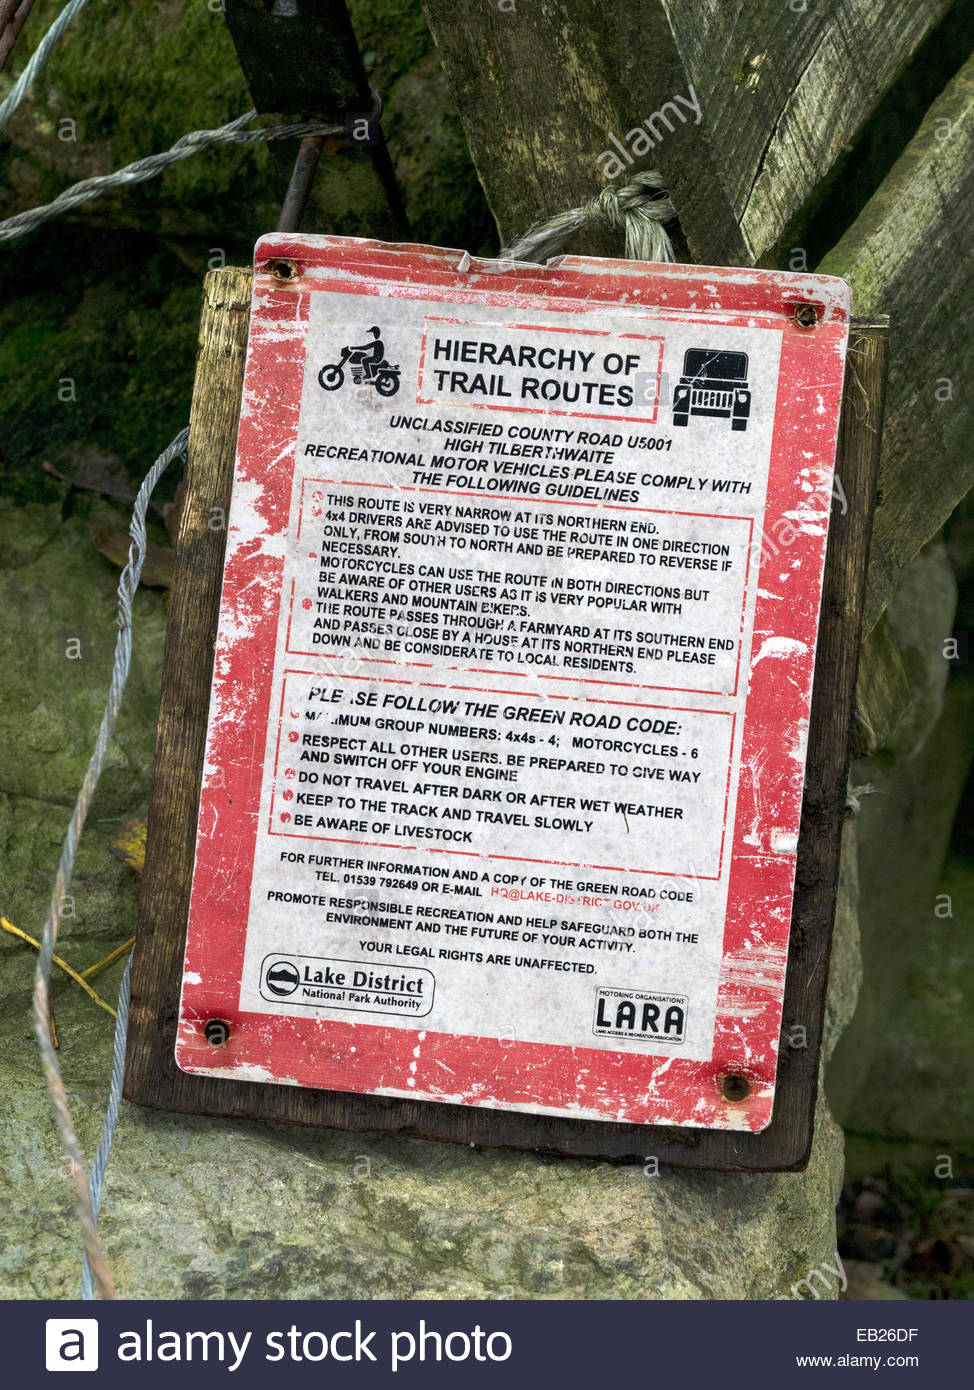 Old Hierarchy of 'Off Road' Trail Routes sign, Langdale, Lake District, Cumbria, England, UK. - Stock Image